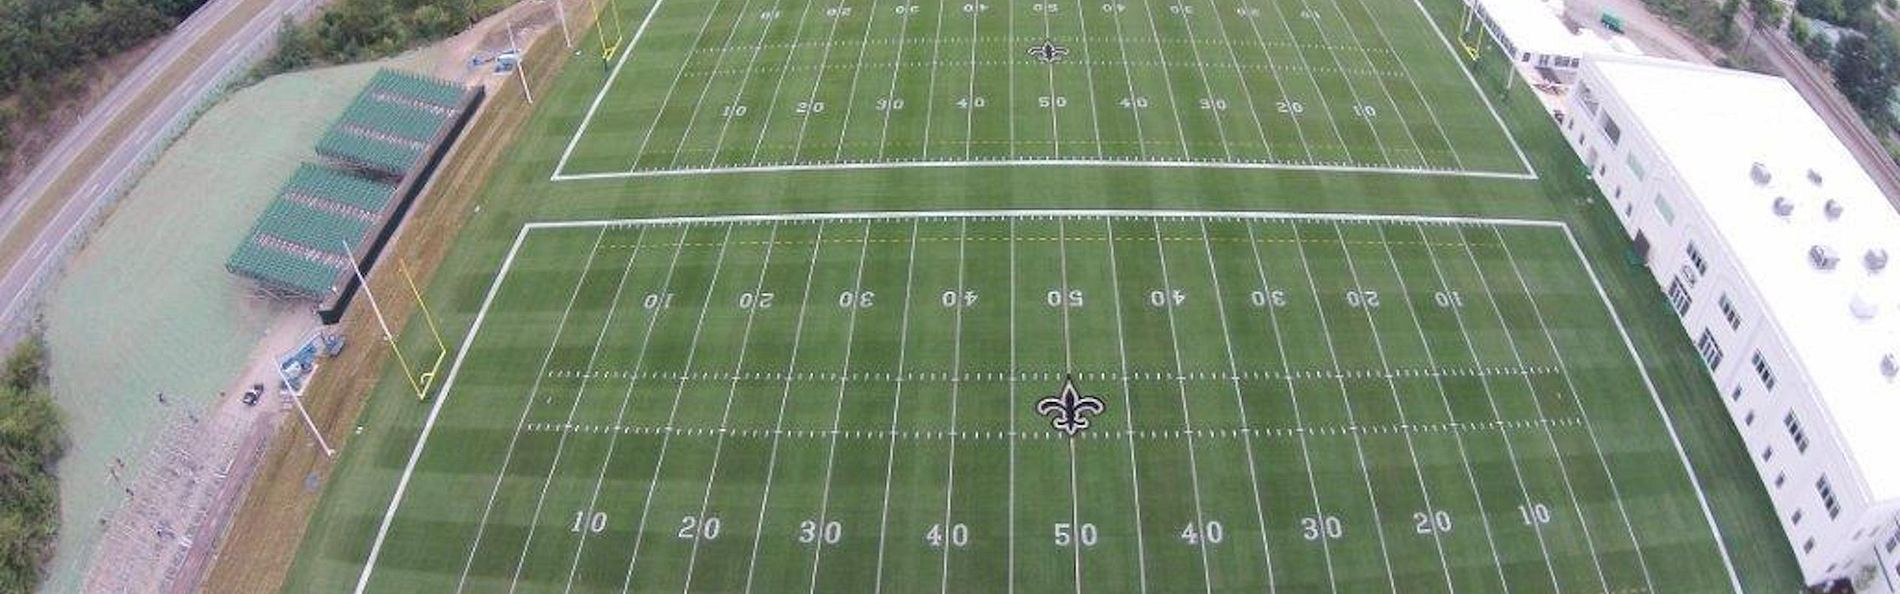 Three regulation-meeting football fields finished in time for the New Orleans Saints preseason practice